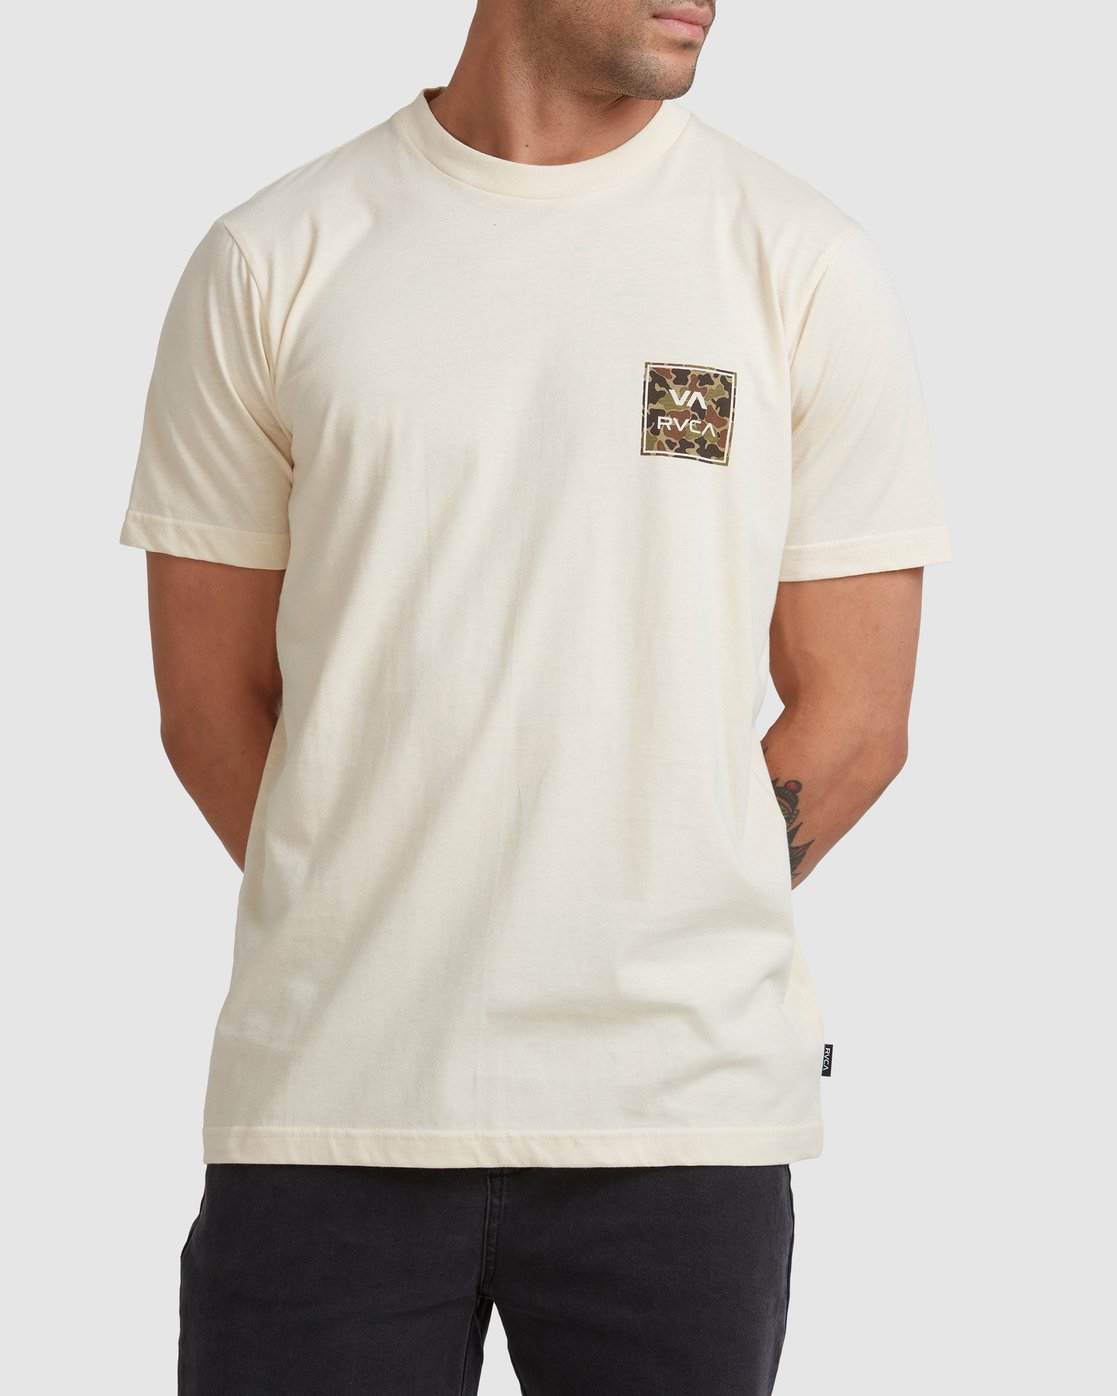 0 VA ALL THE WAYS MULTI TEE White R182062 RVCA